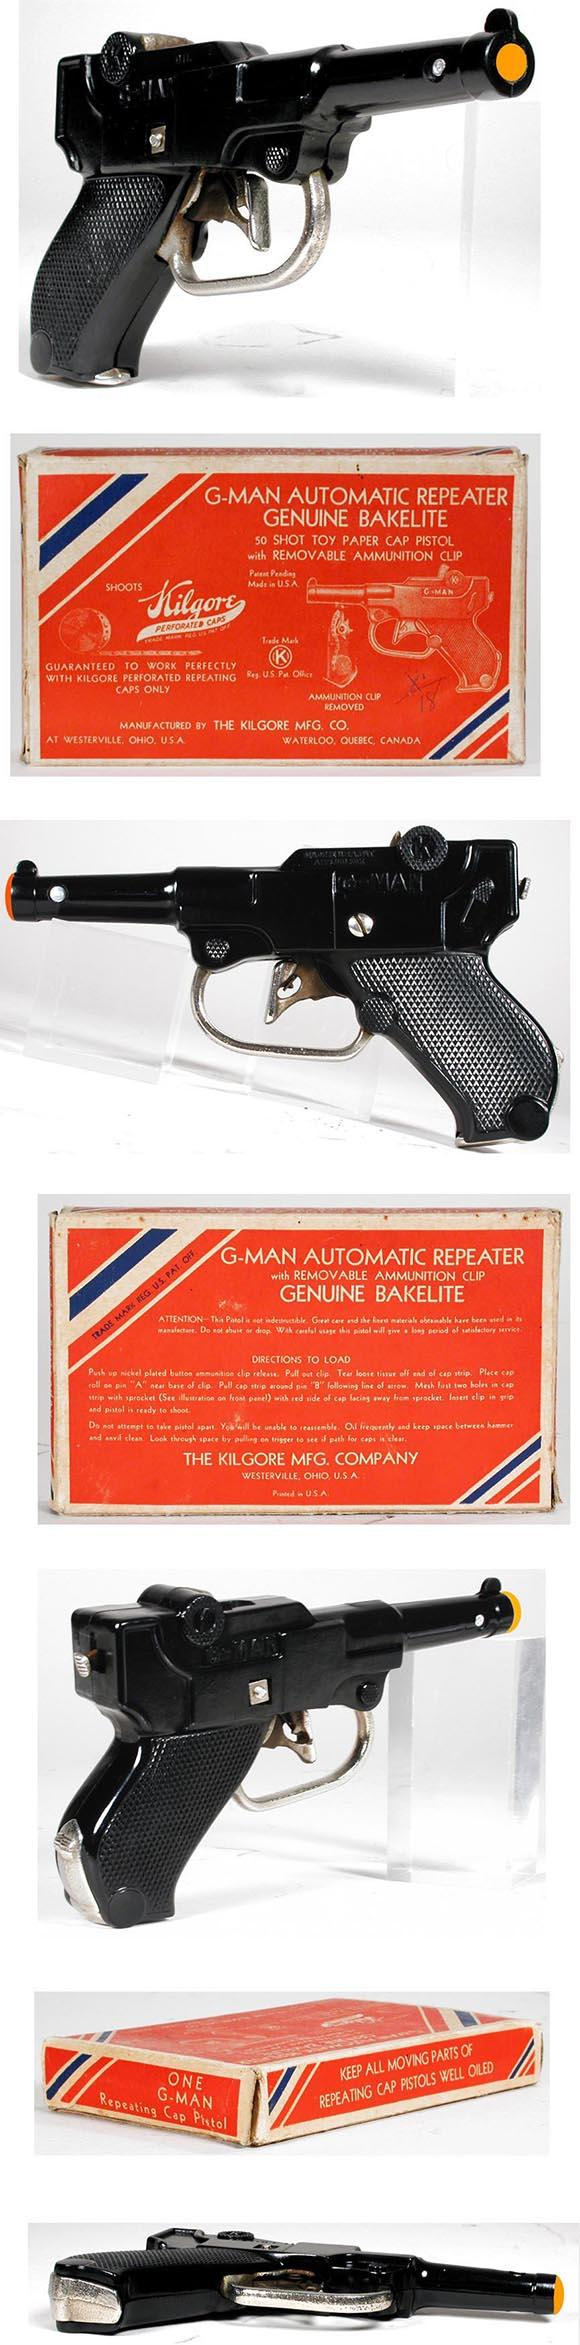 c.1938 Kilgore, Bakelite G-Man Automatic Repeater Pistol in Original Box